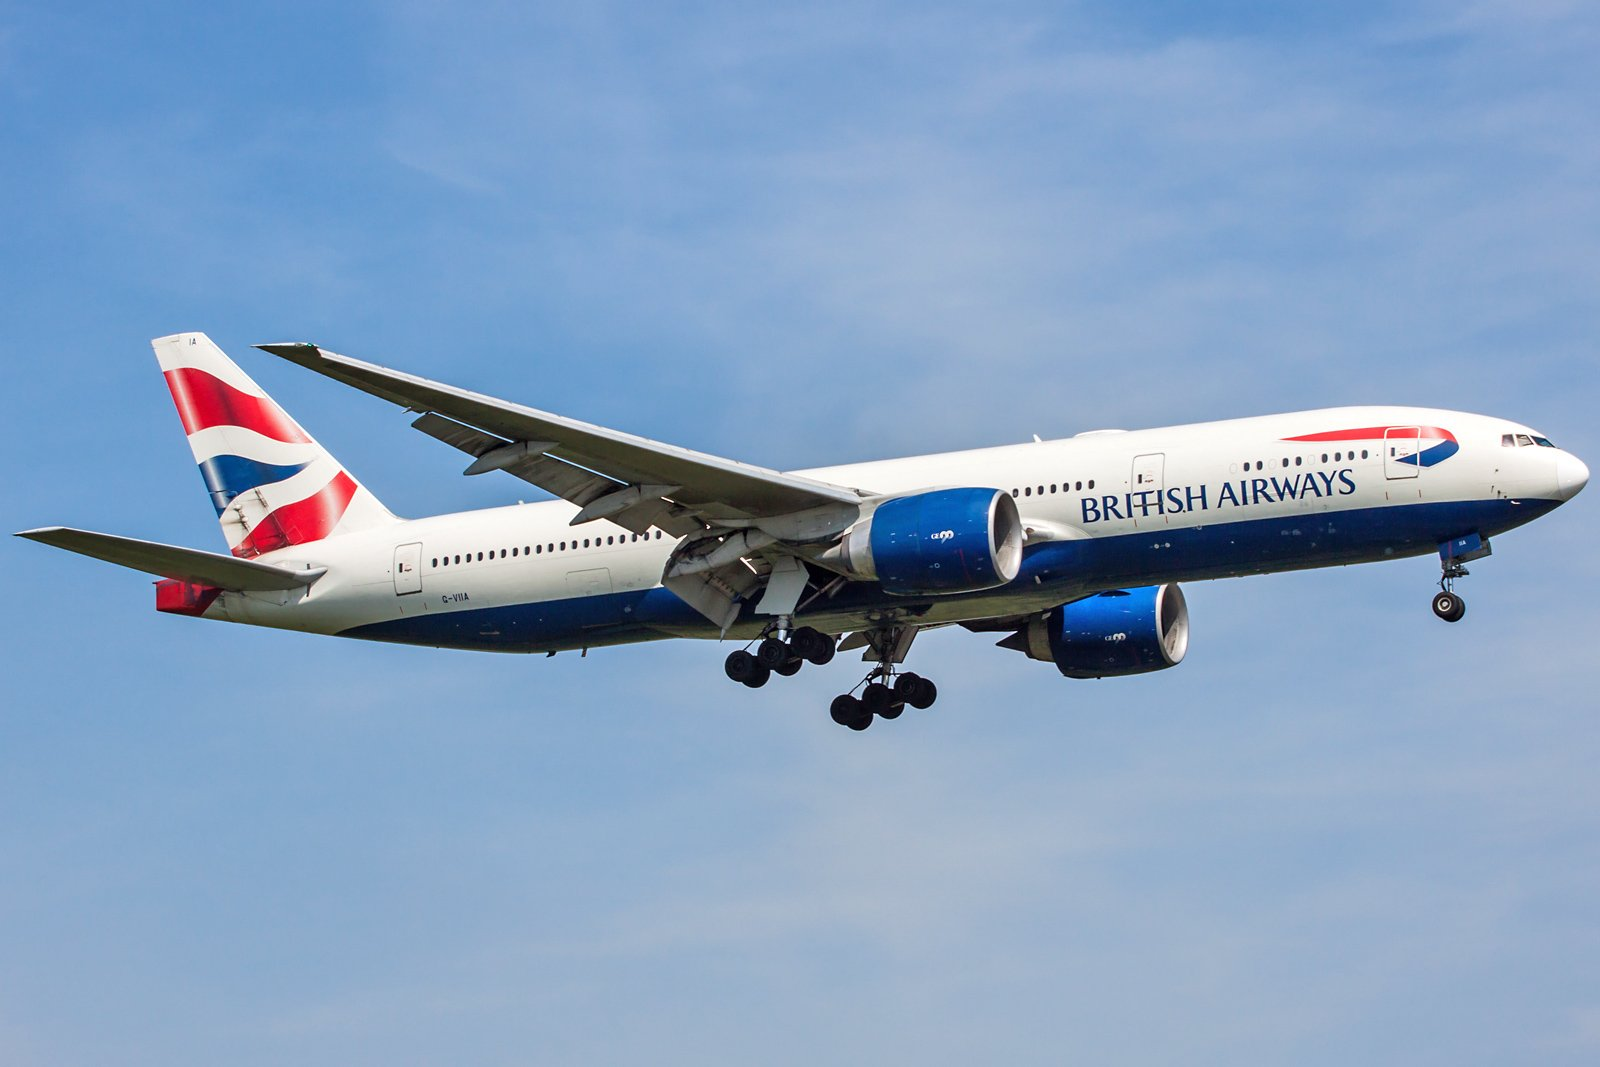 British Airways Boeing 777-236(ER) G-VIIA